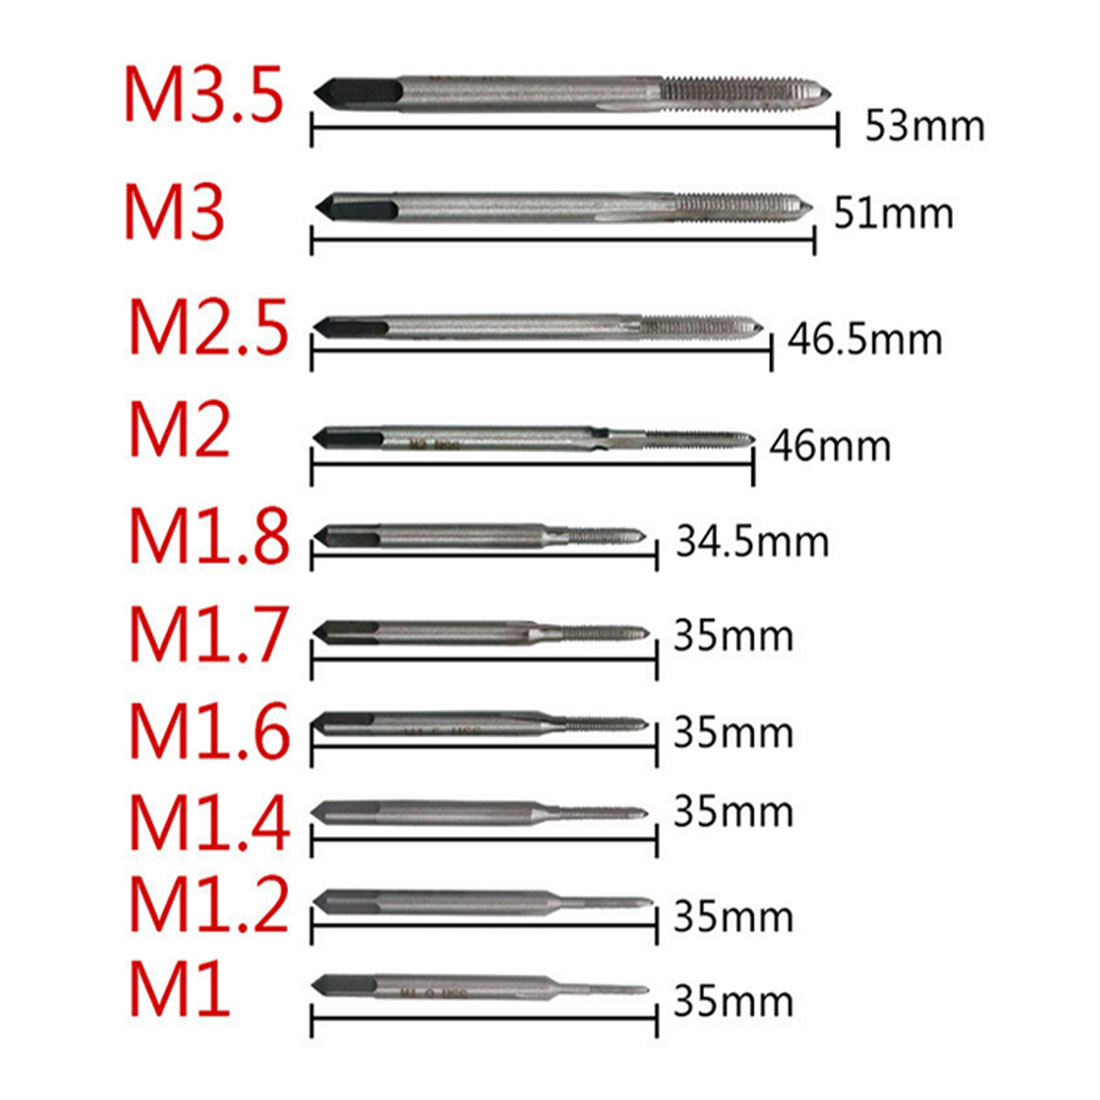 Hot 10pcs/set Hand Tap Thread Wire Tapping/Threading/Taps/Attack M1 M1.2 M1.4 M1.6 M1.7 M1.8 M2 M 2.5 M 3 M3.5 Hand Tools